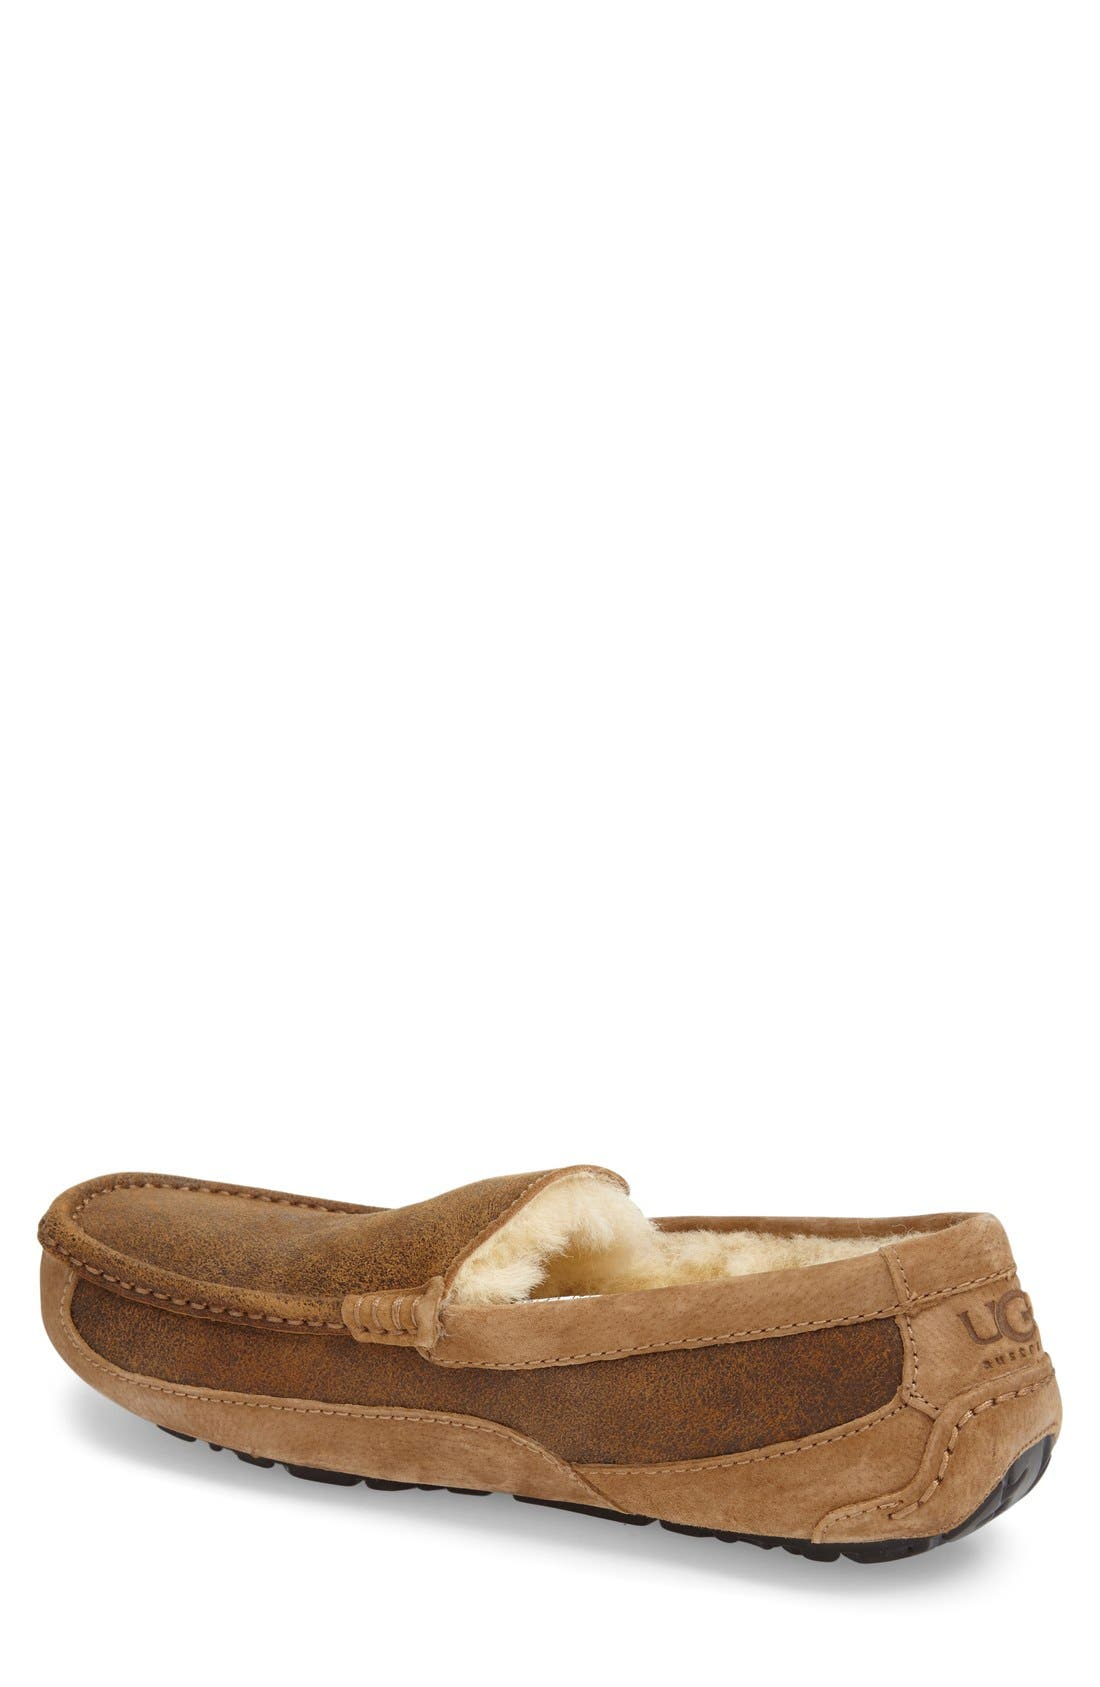 Alternate Image 2  - UGG® Ascot Bomber Slipper (Men)